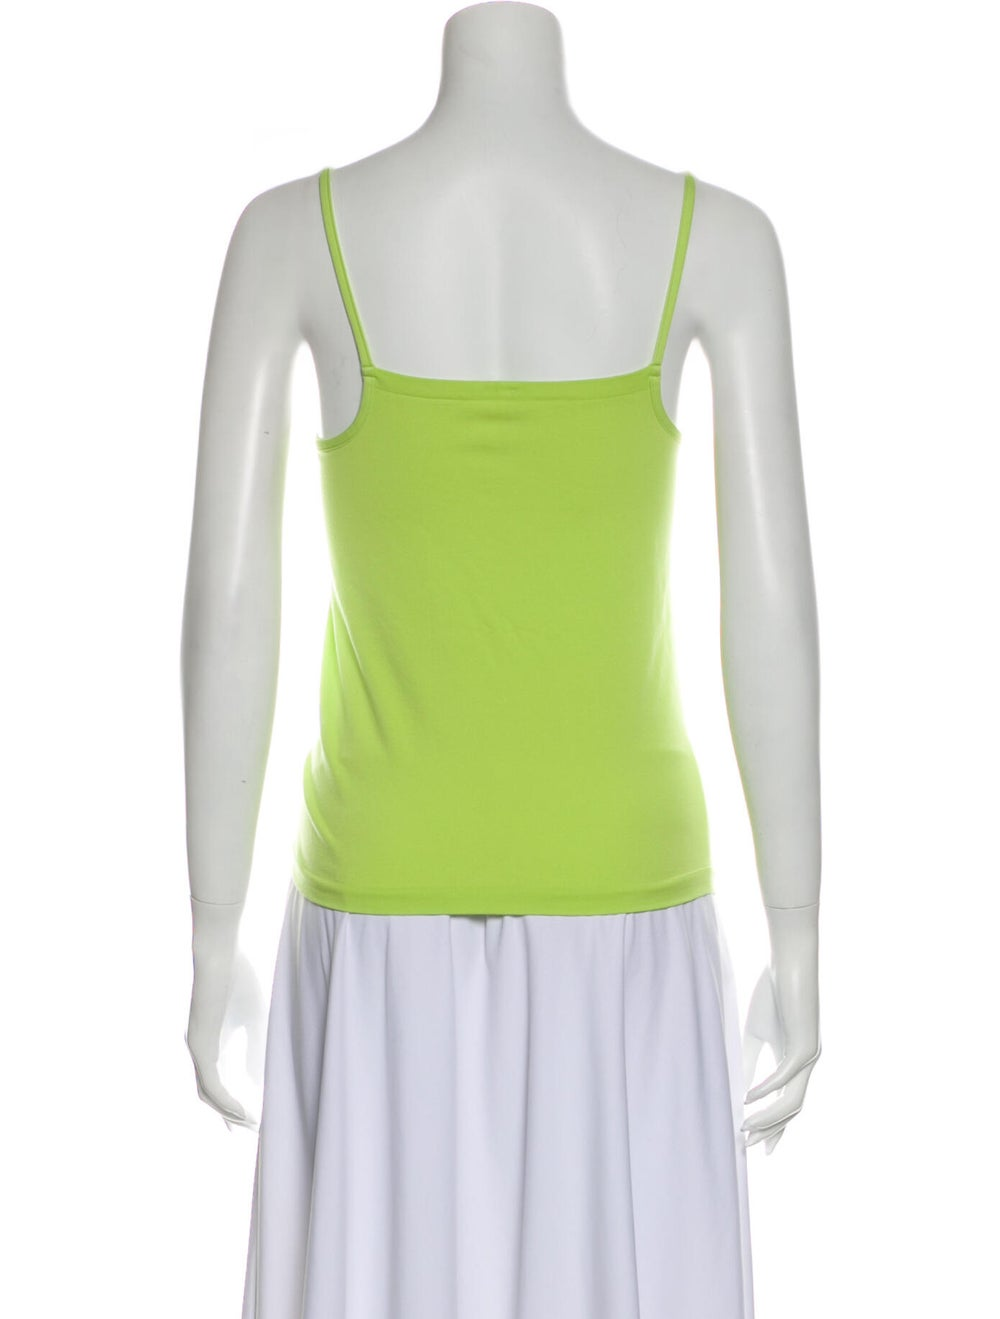 Wolford Square Neckline Sleeveless Top Green - image 3